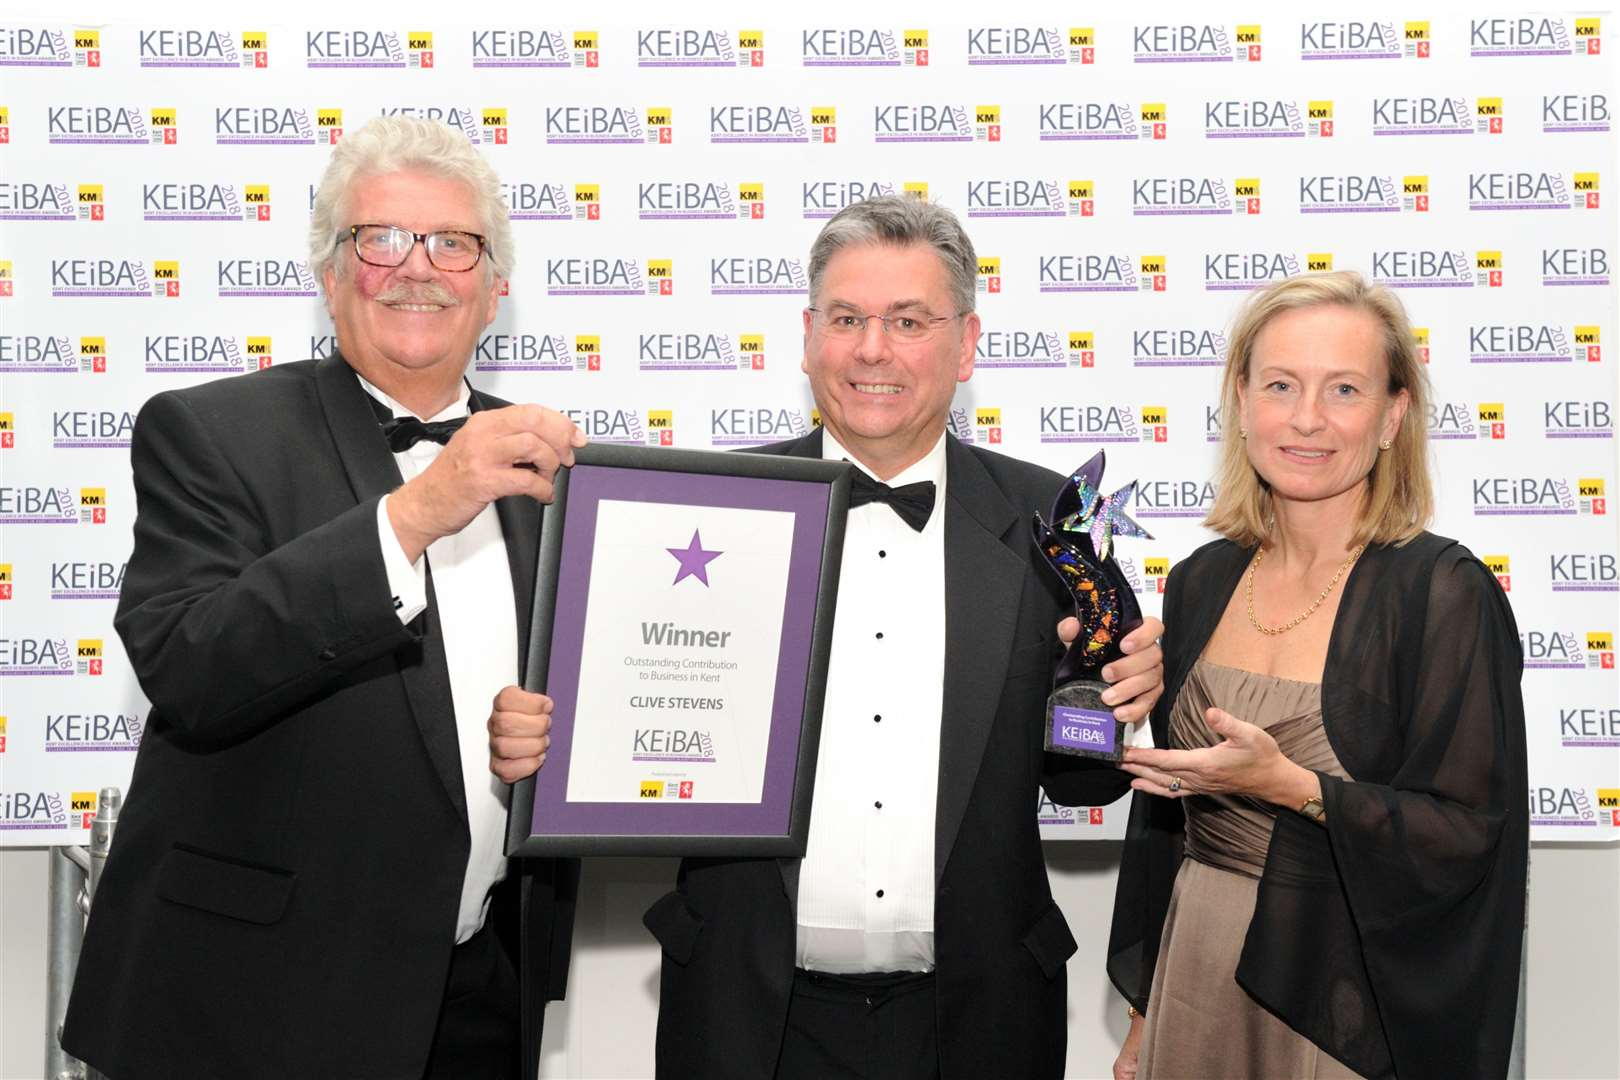 Clive Stevens, centre, wins the Outstanding Contribution to Business Award at KEiBA 2018 - flanked by KCC's Mark Dance, left, and the KM Media Group chairman Geraldine Allinson